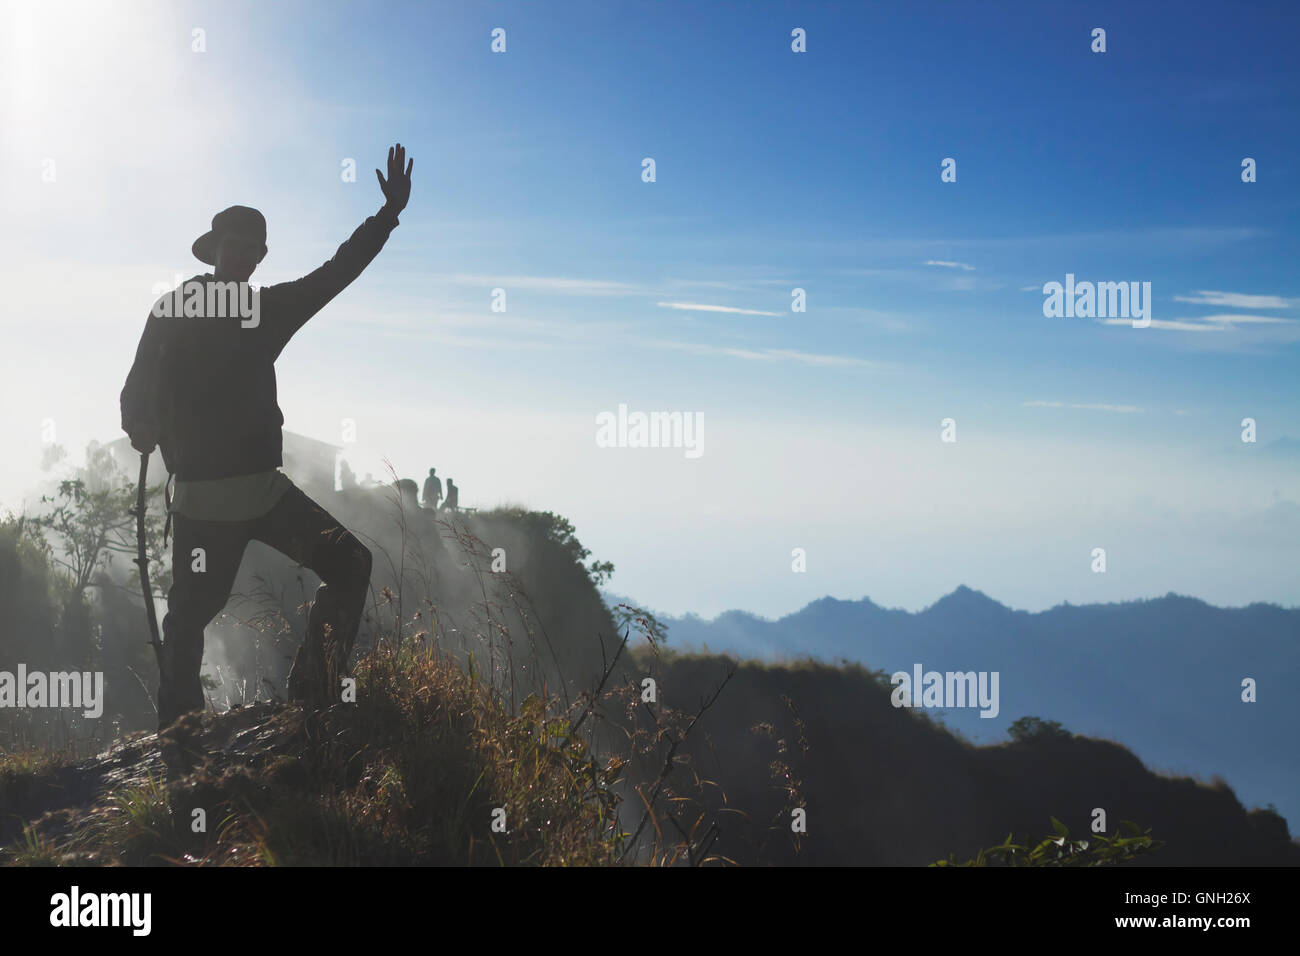 Silhouette of a man standing on mountain waving, Mount Batur, Bali, Indonesia - Stock Image